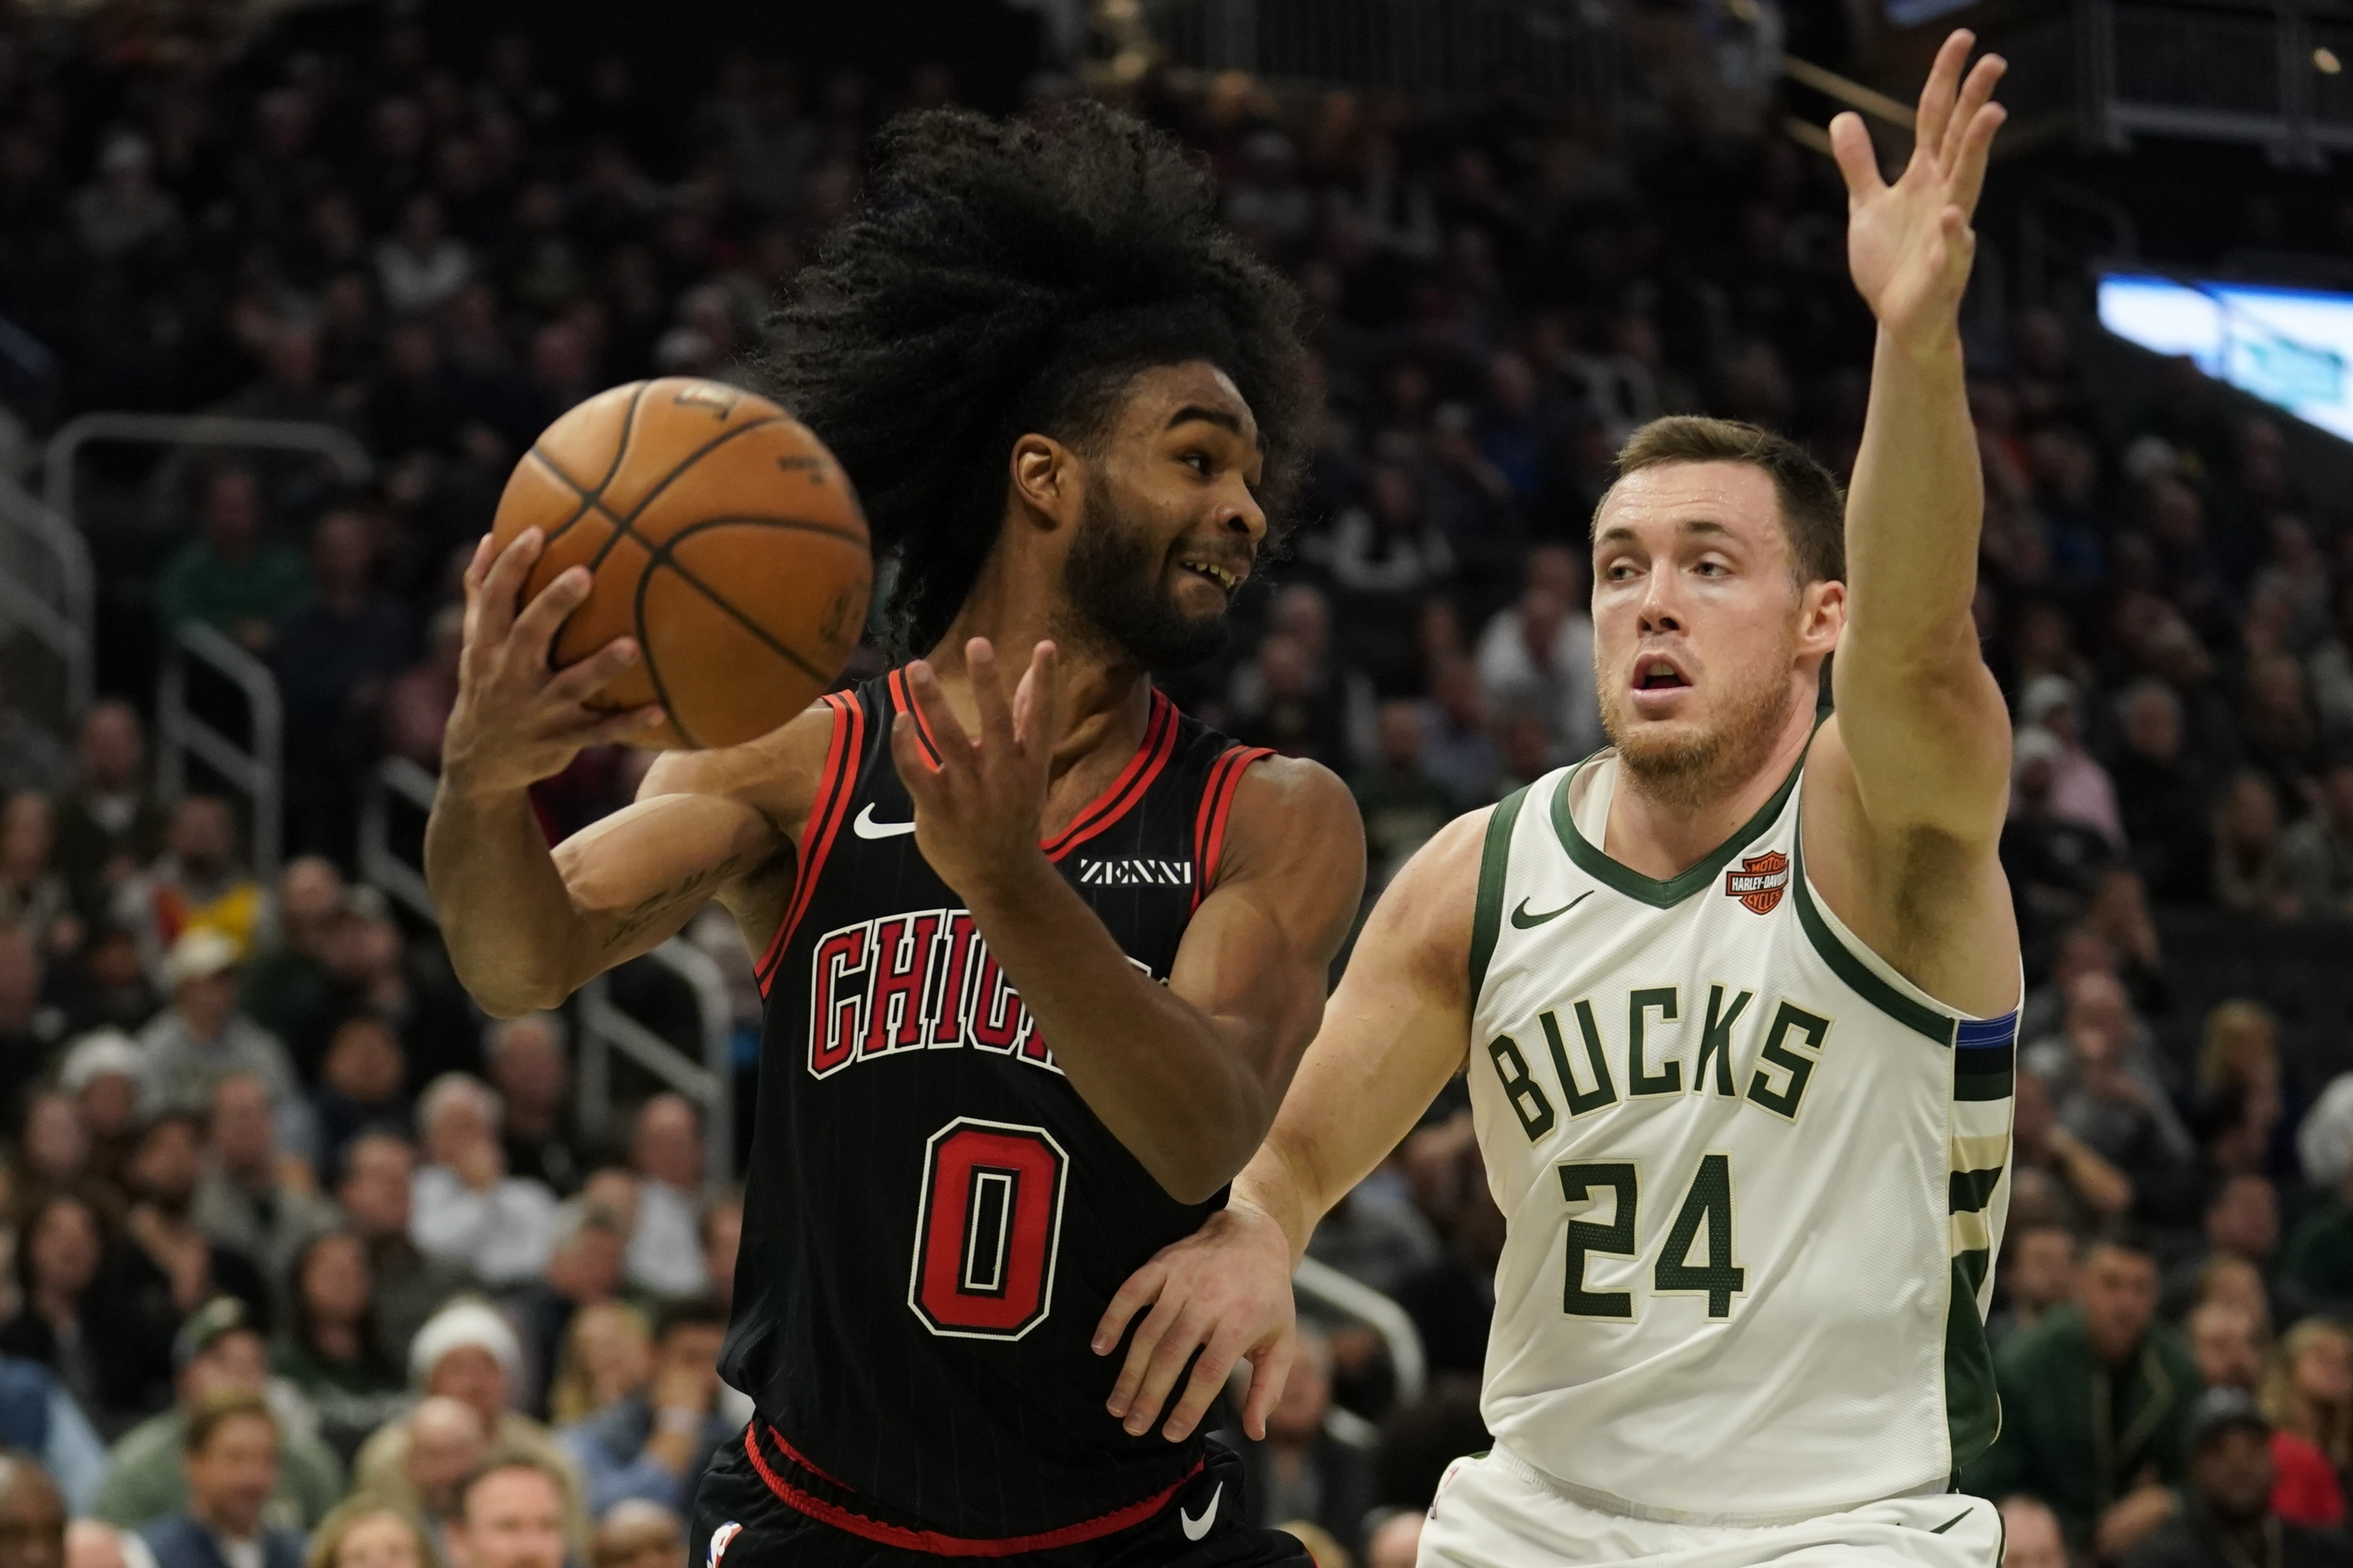 The Bulls' Coby White tries to drive past the Milwaukee Bucks' Pat Connaughton during the second half Thursday night in Milwaukee. The Bucks won 124-115.